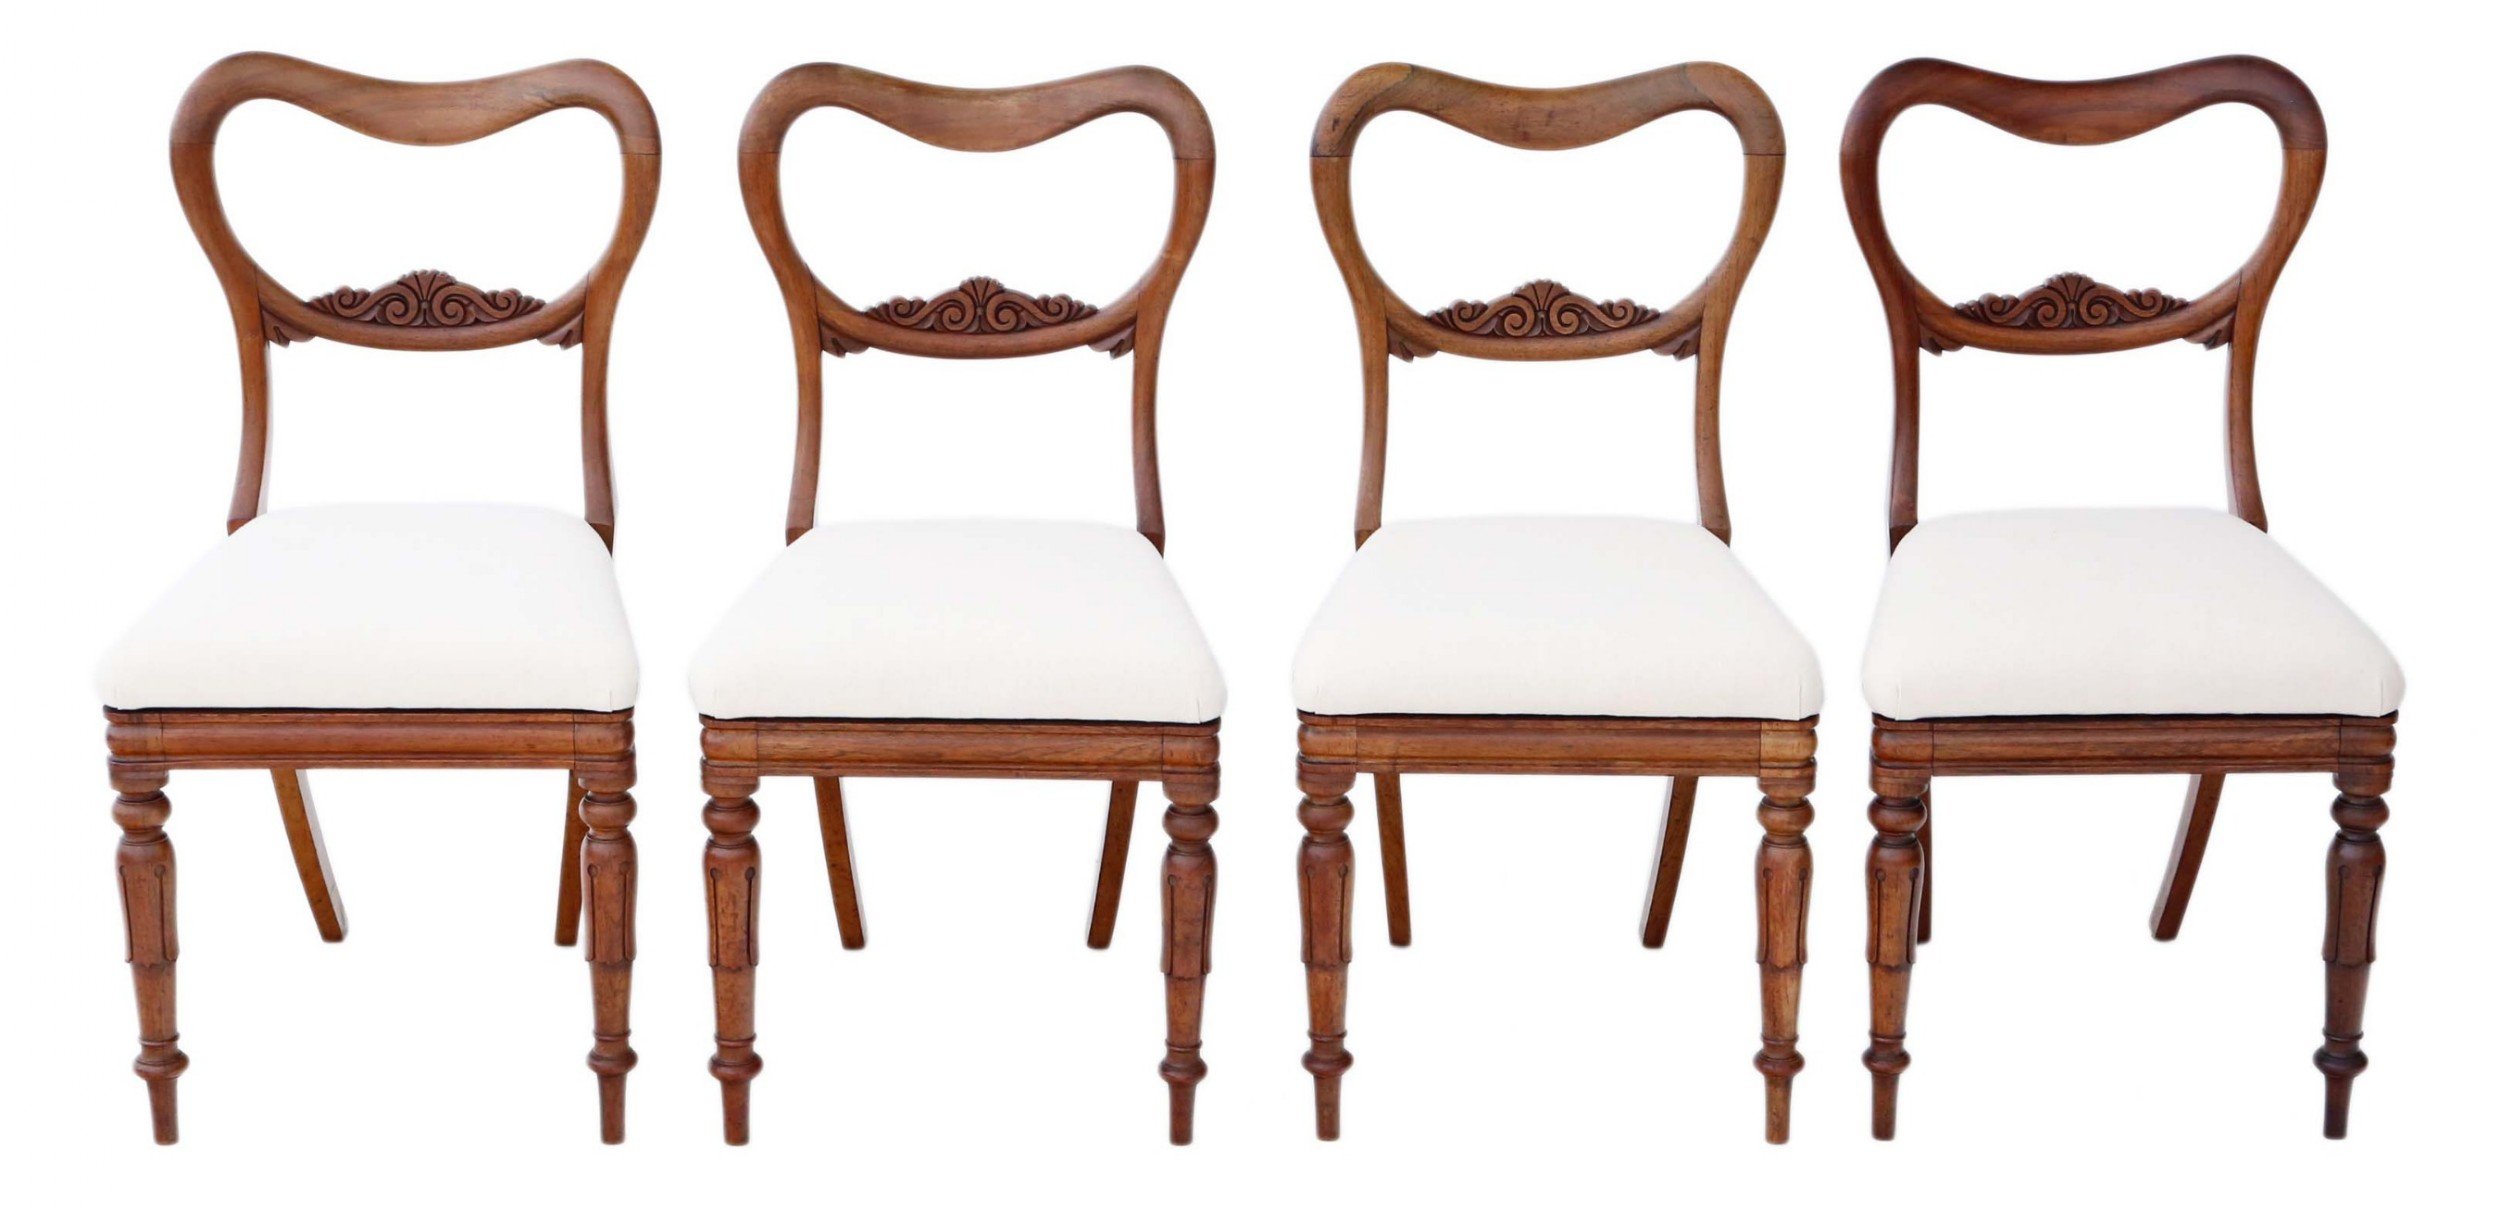 antique quality set of 4 william iv rosewood balloon back dining chairs c1835